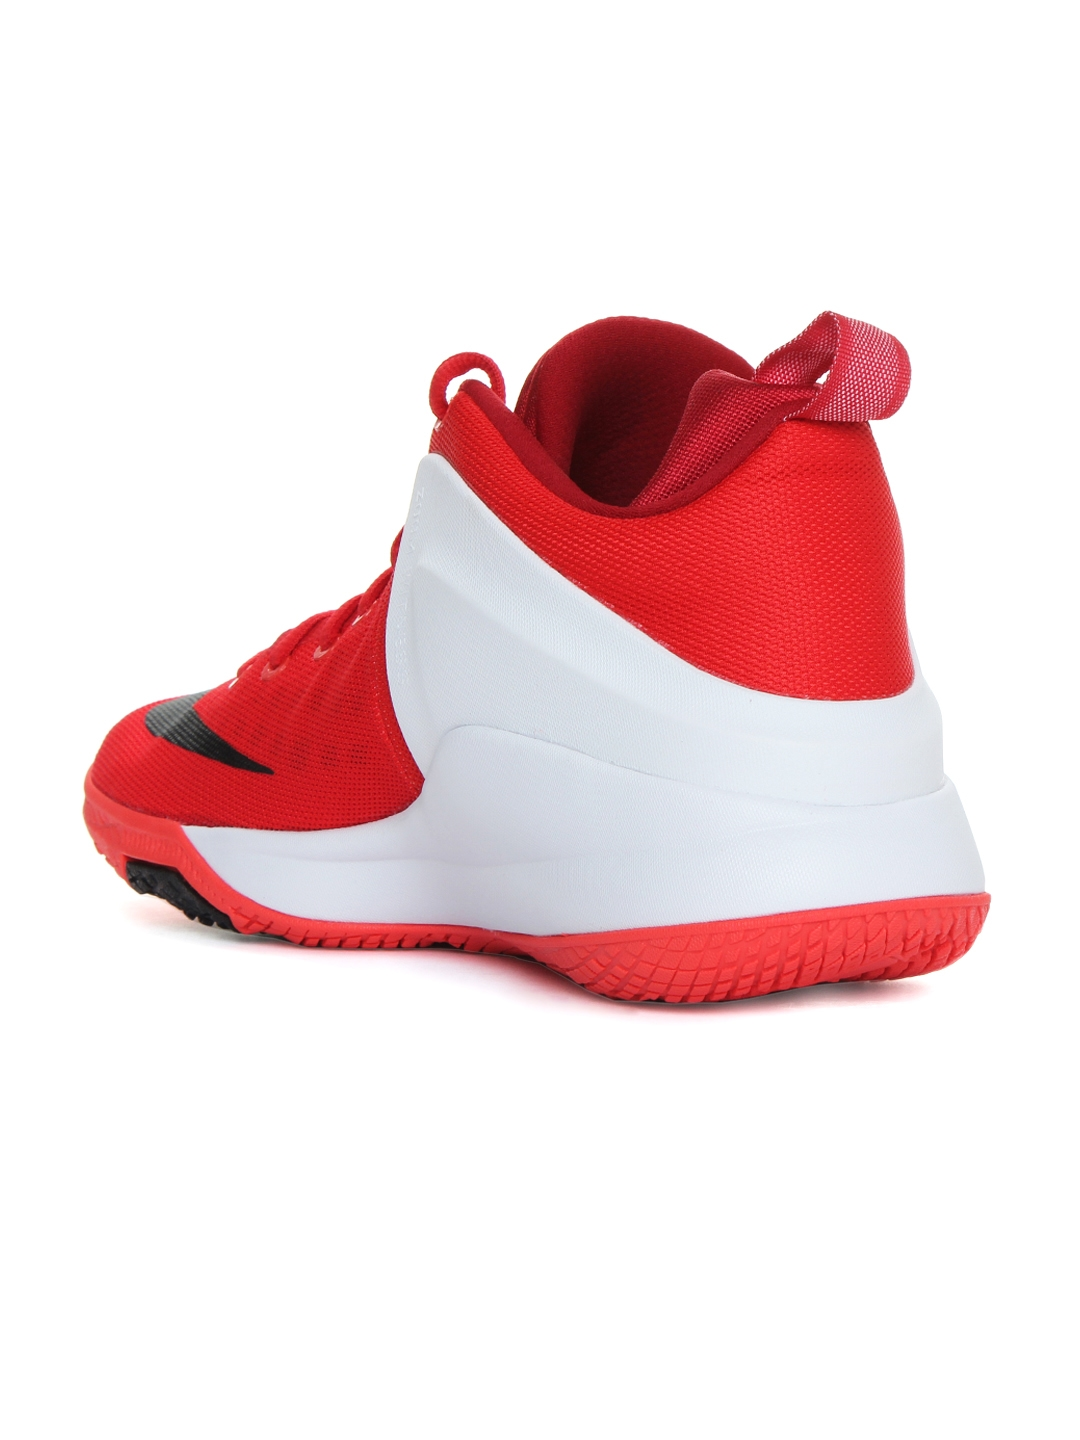 39ba0a965ab4 Nike Men Red   White ZOOM Witness LeBron James Mid-Top Basketball Shoes